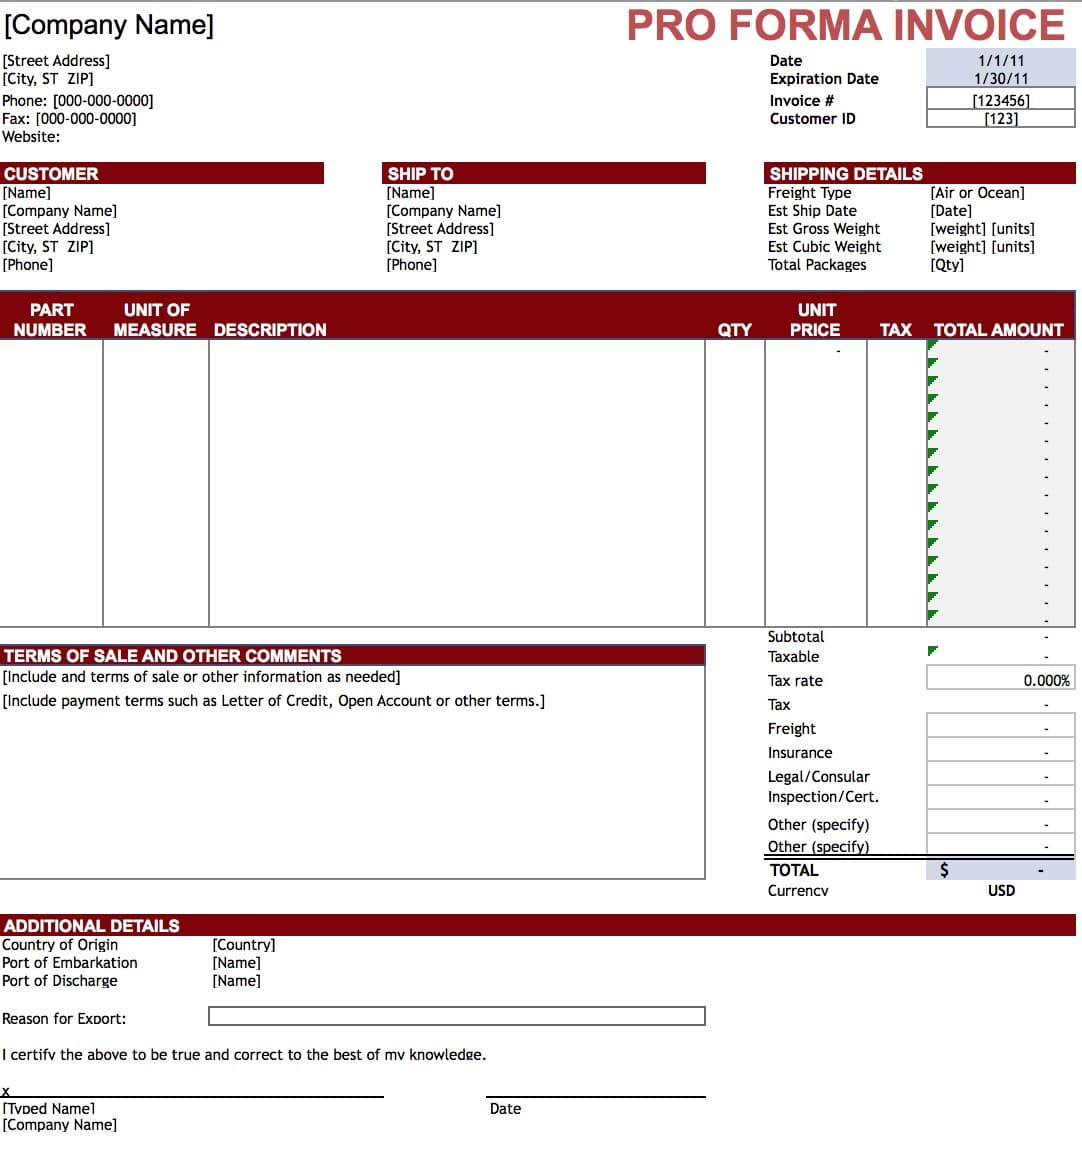 Export Invoice Format|Export Invoice Sample & Template for Online